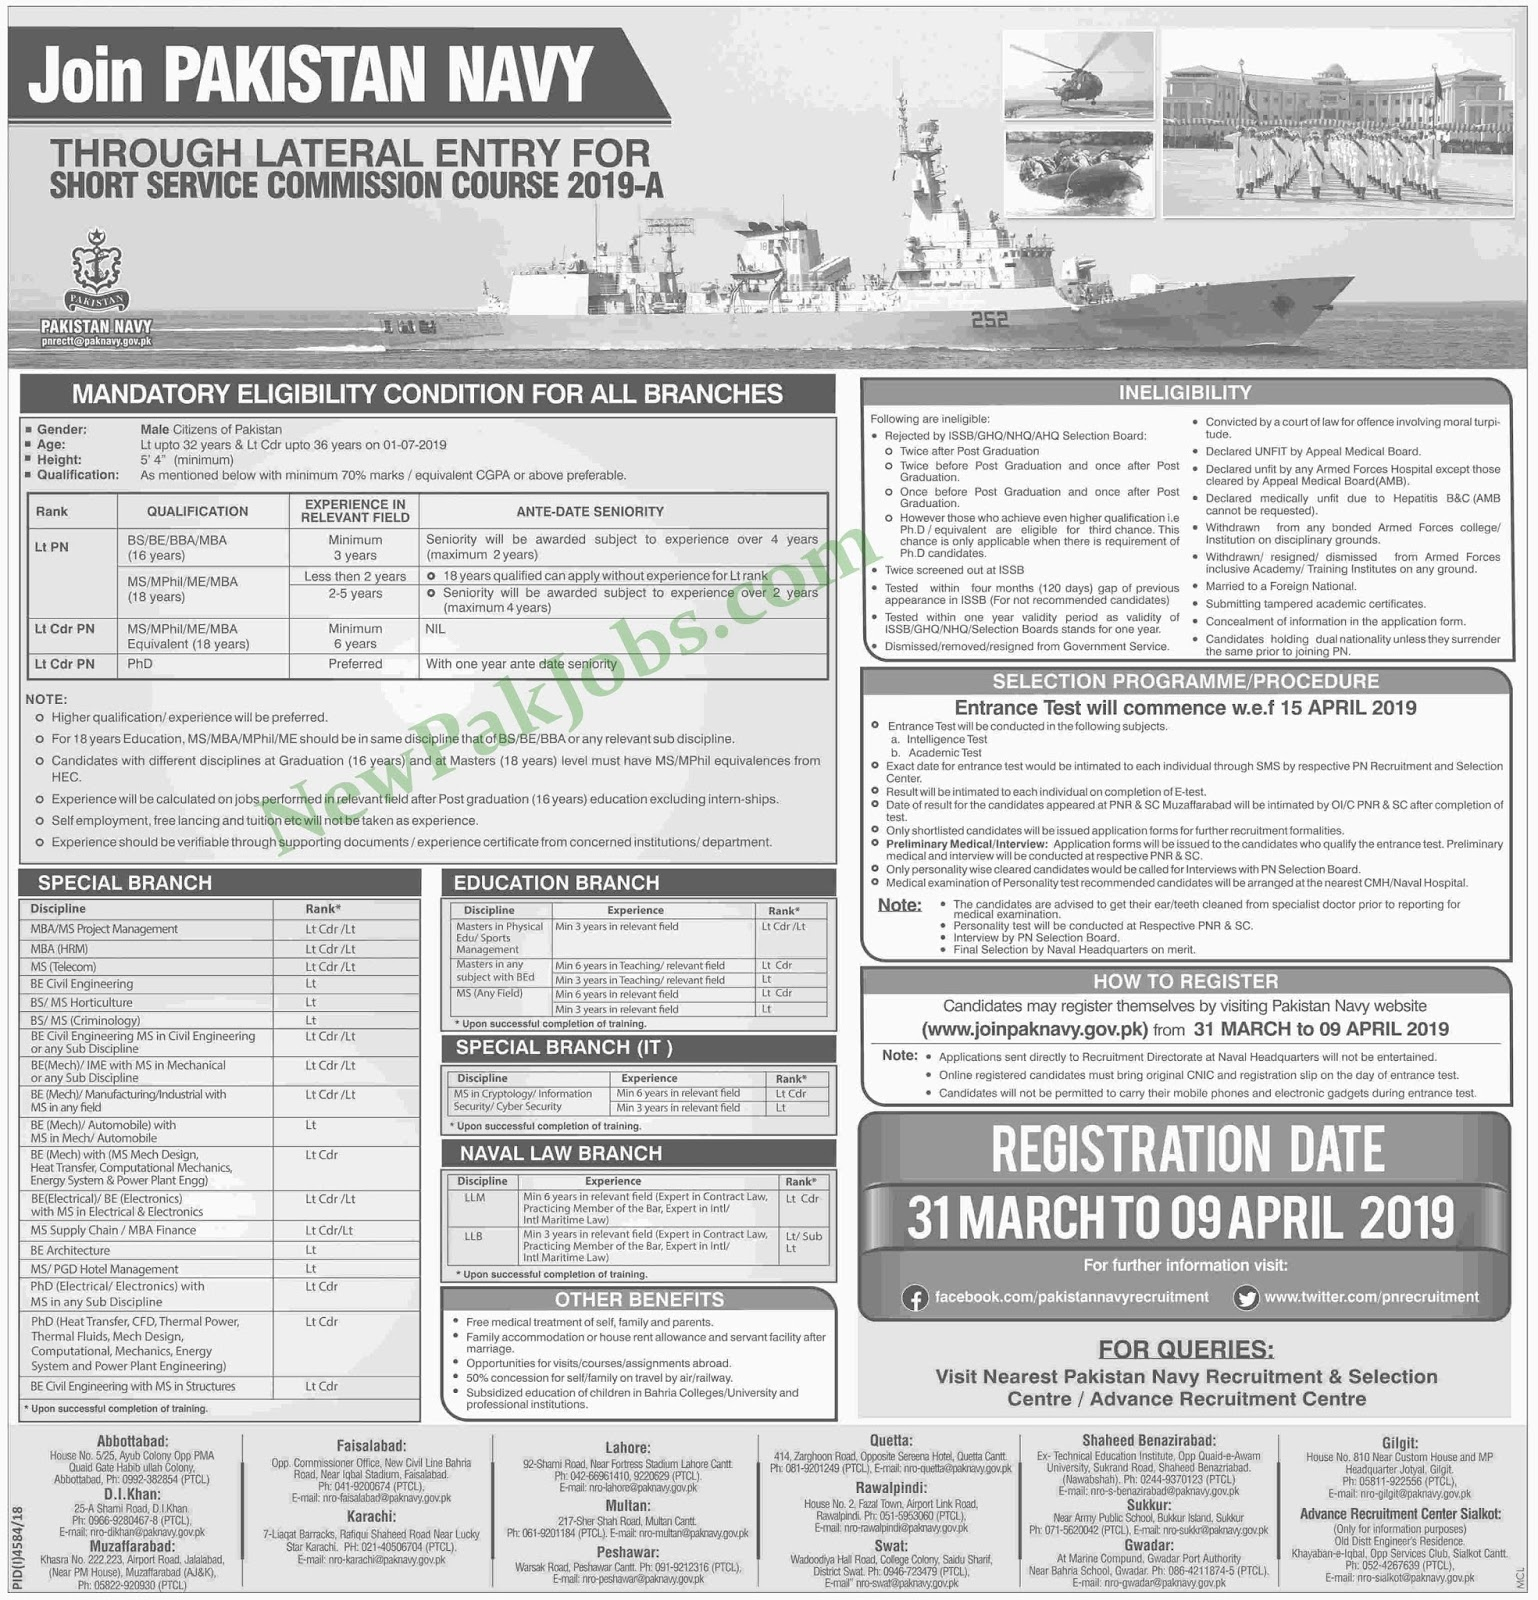 Join Pak Navy As Short Service Commission Course 2019-A